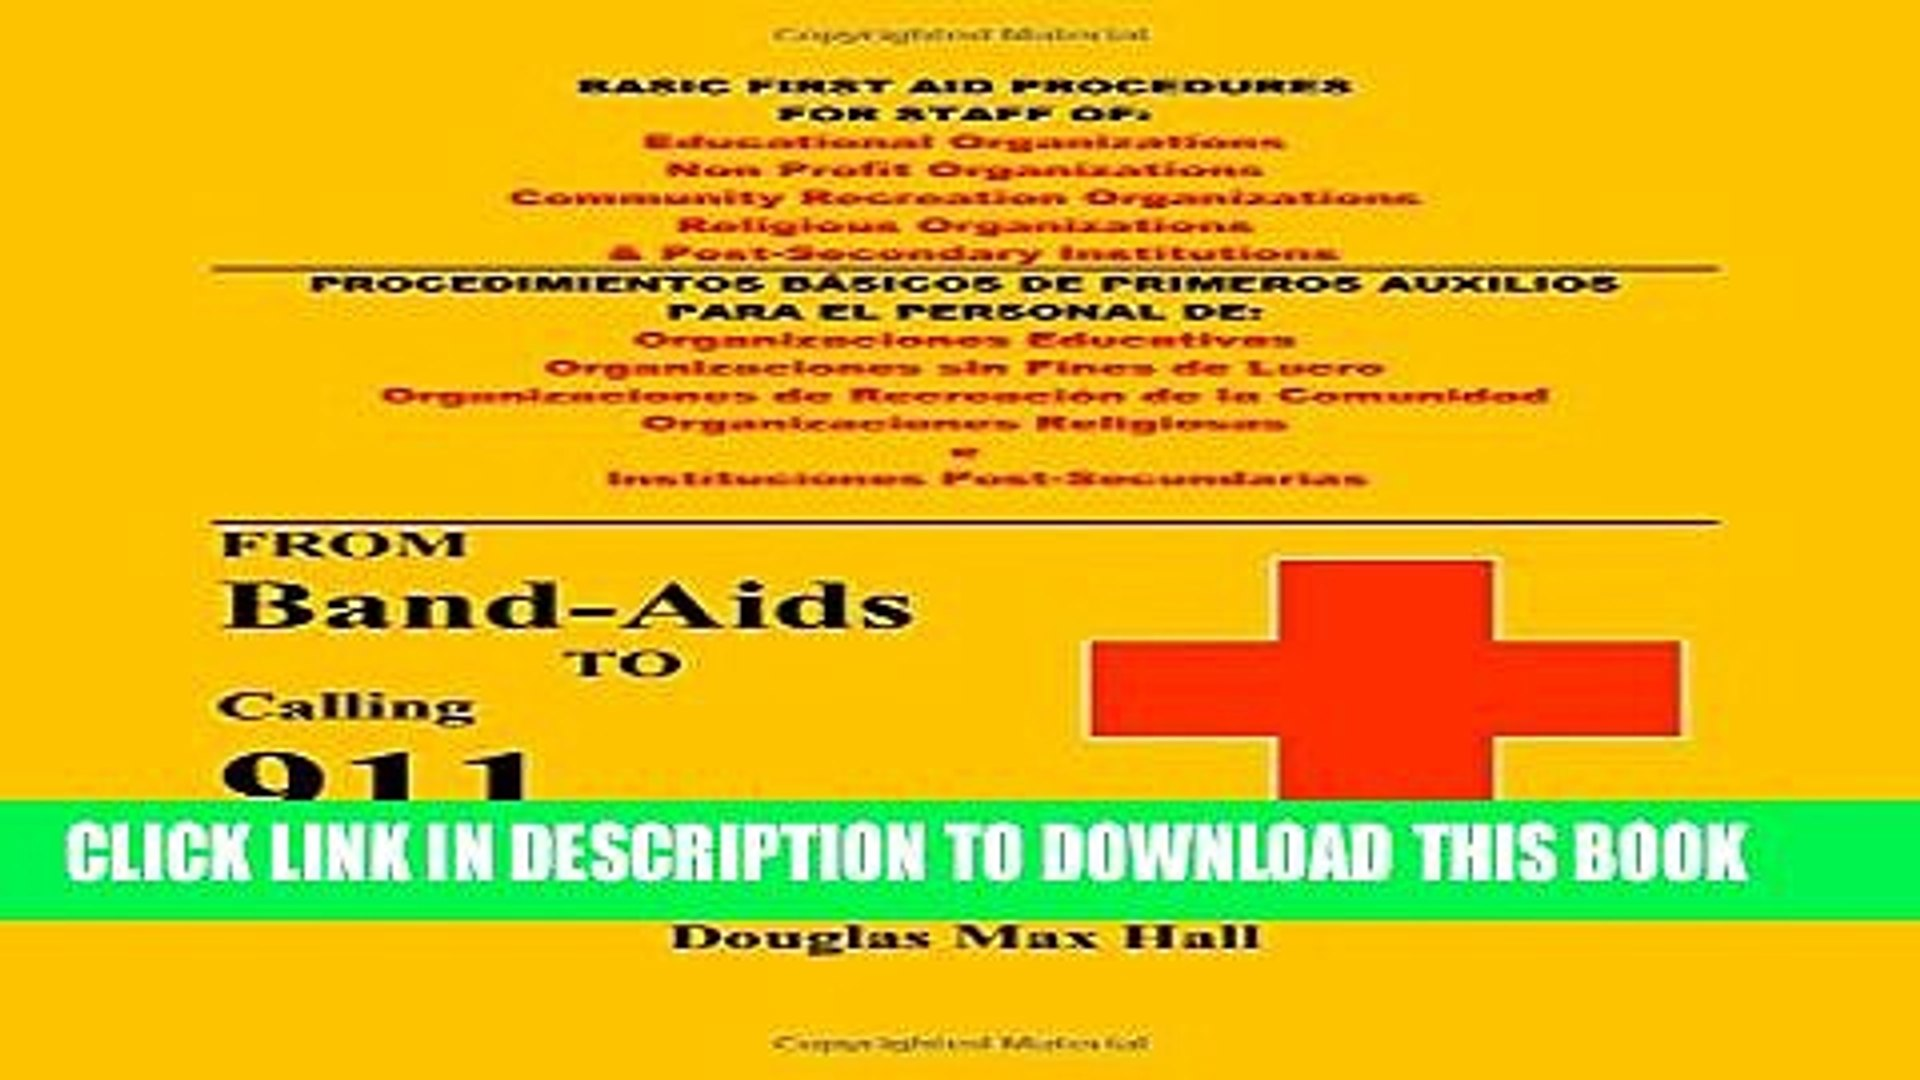 [PDF] Basic First Aid Procedures for Staff of Non Profit Organizations Full Online